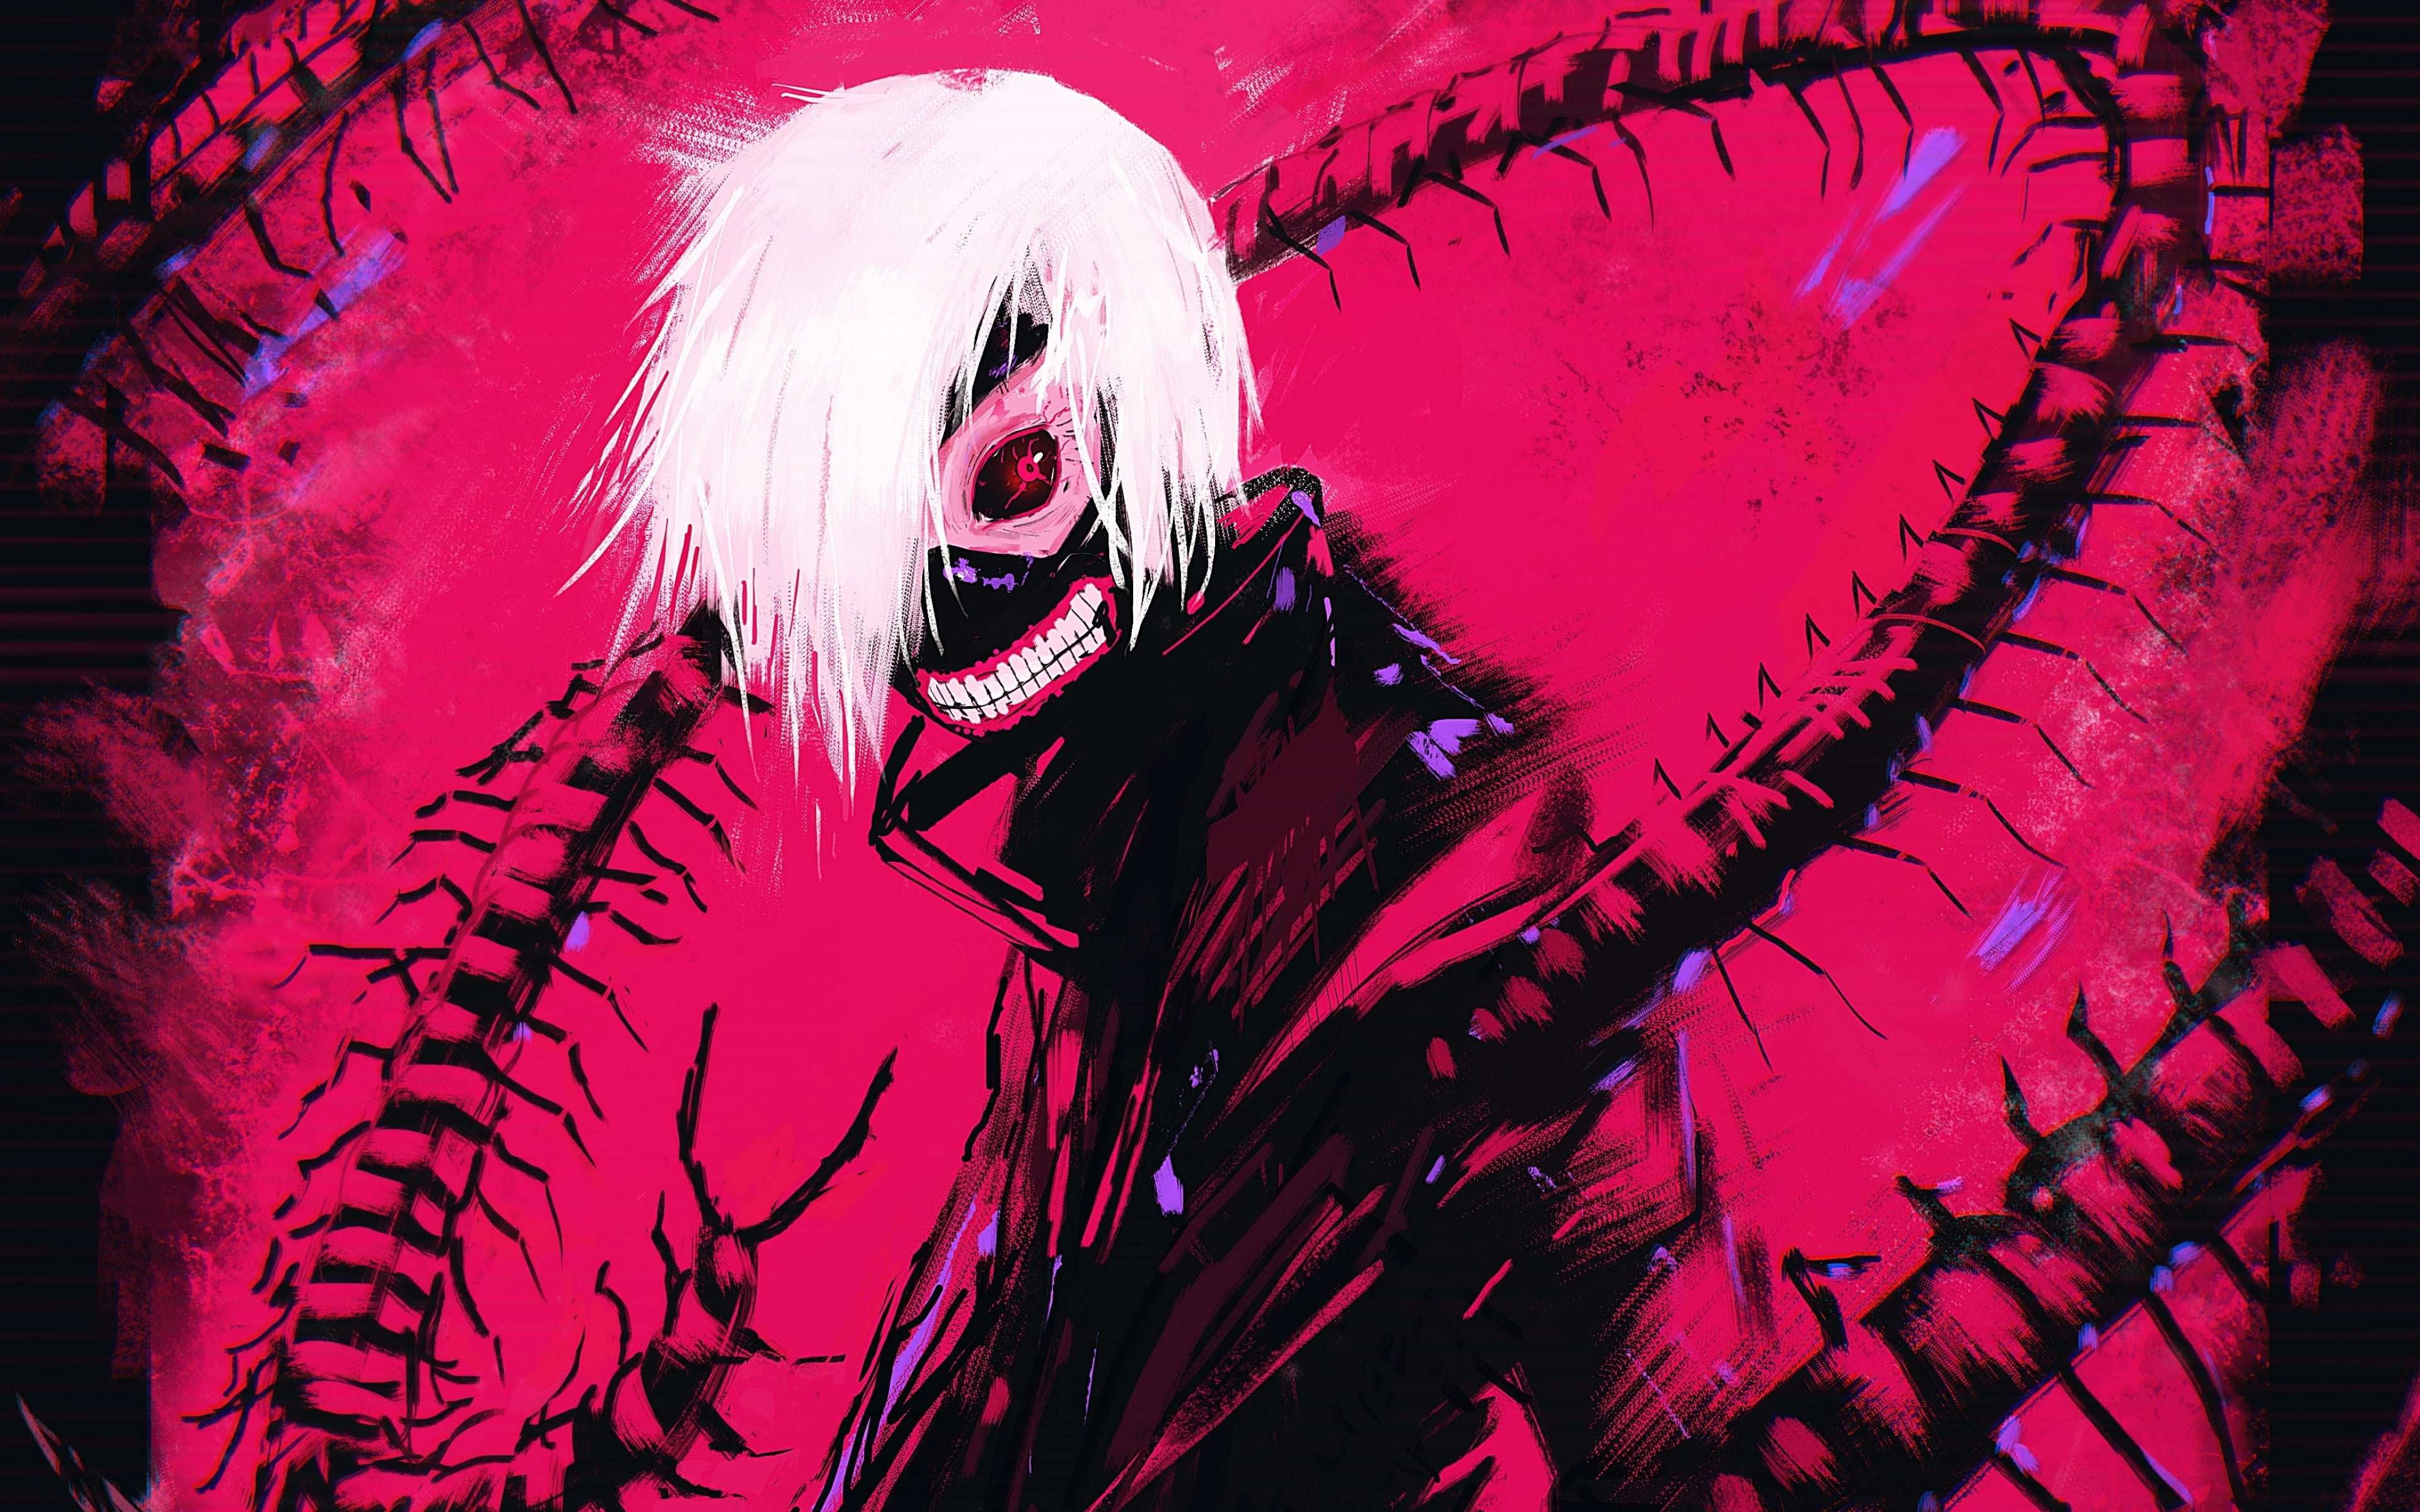 Tokyo Ghoul Aesthetic Ps4 Wallpapers Wallpaper Cave